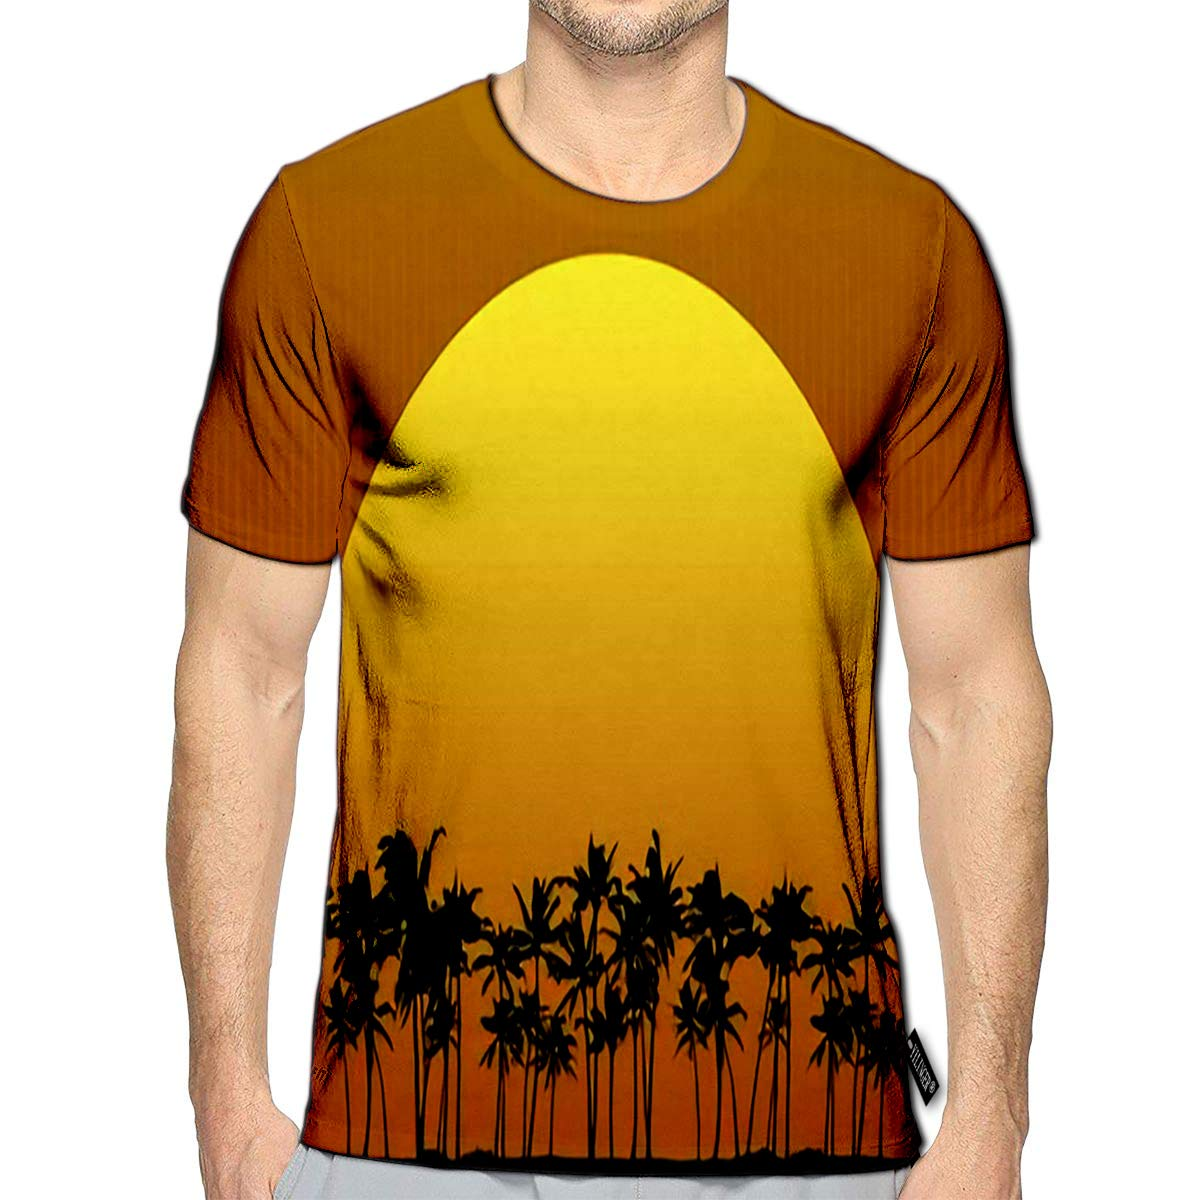 3D Printed T-Shirts Vintage Label Palm Trees Grunge Retro Badge Short Sleeve Tops Tees